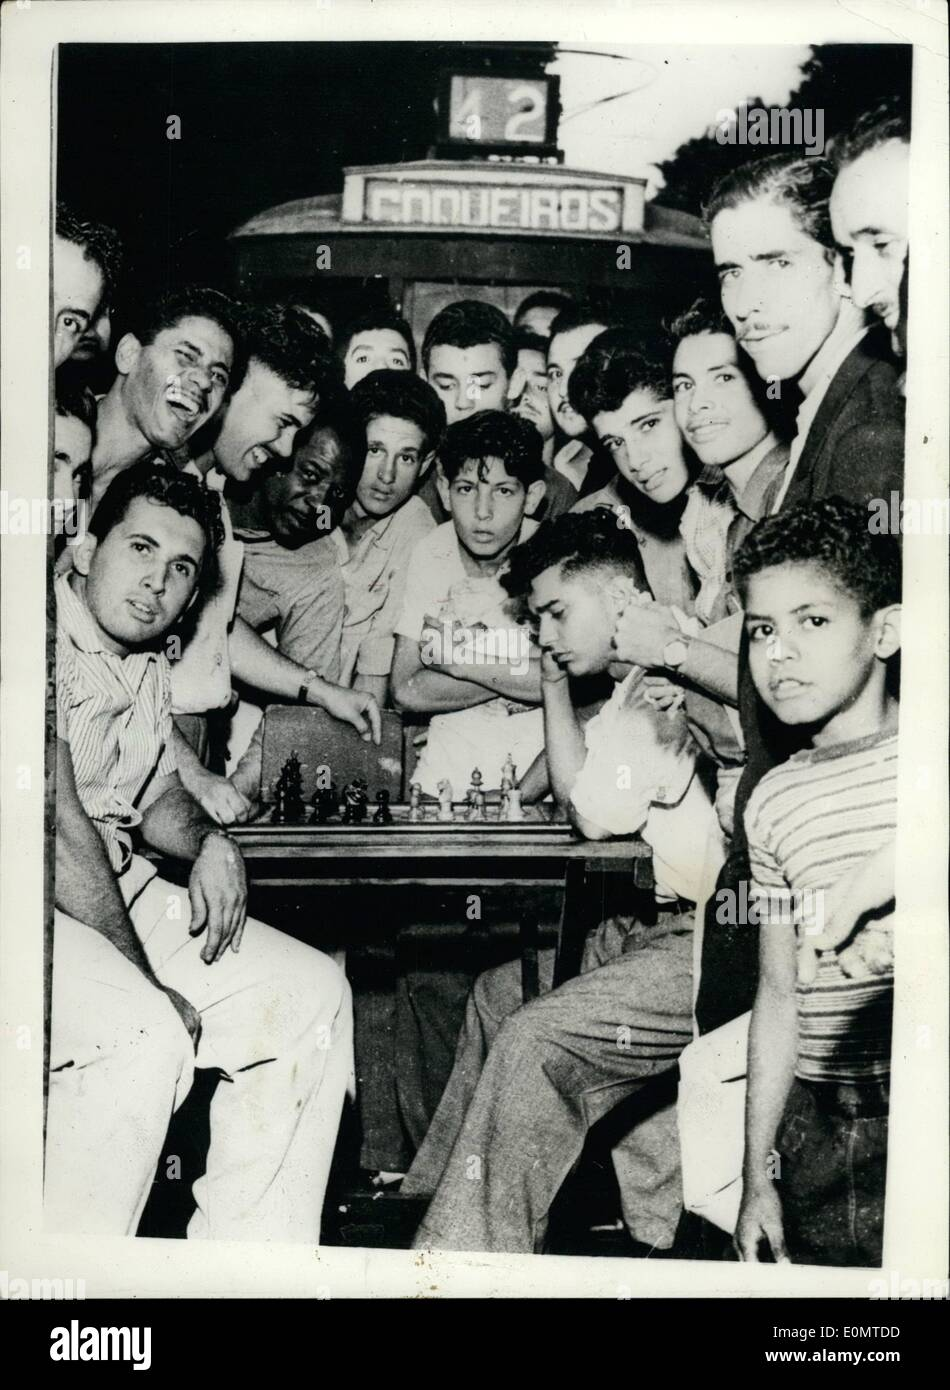 Jun. 06, 1956 - Students Demonstrate Against Fares Rise In Rio.. Play Chess On The Tramlines.. In an effort to prevent a 100 p.c. increase in tram fares in Rio d Janiero, Brazil - students from Universities recently organised a full scale demonstration - in which they stopped the trams by 'camping' on the lines.. To pass away the time they played games of chess - table tennis etc.. keystone Photo Shows:- The students seen during their game of chess - on the tramway lines in Rio - Stock Image